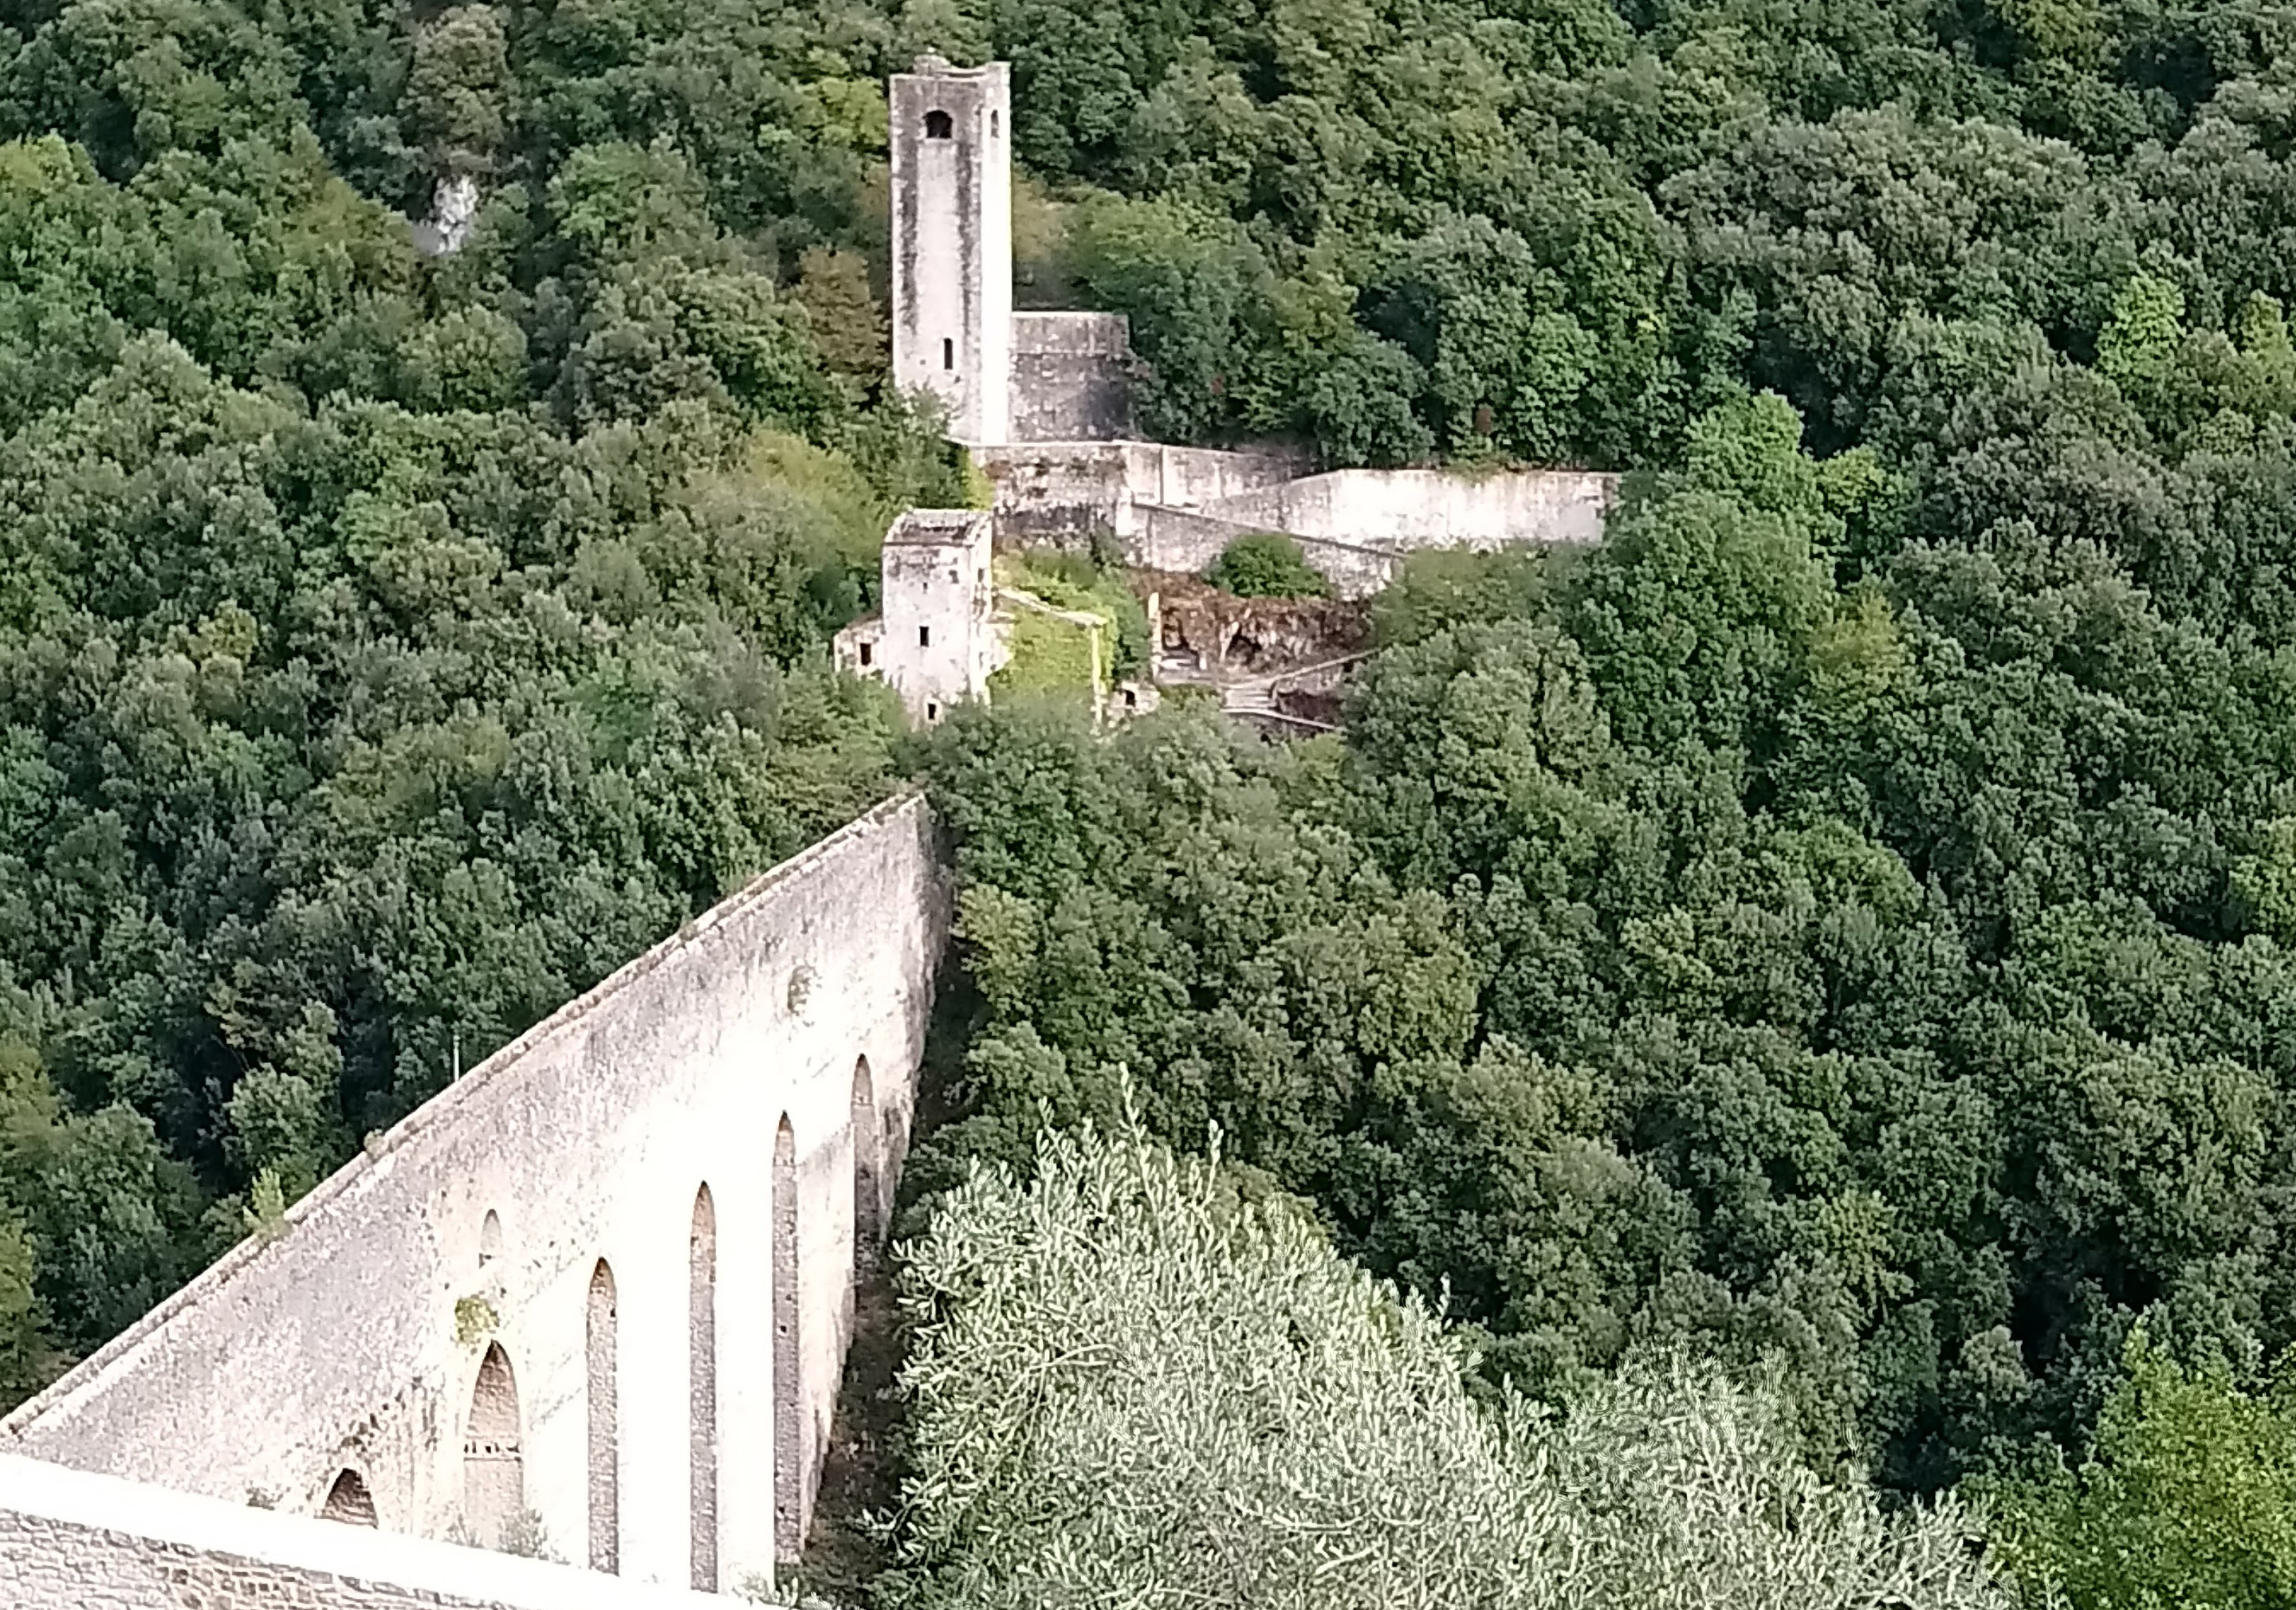 The Ponte delle Torre Aqueduct from the heights of La Rocca Albornoziana. It gets its name from the tower at the opposite side. (Photo: © Henri Craemer)